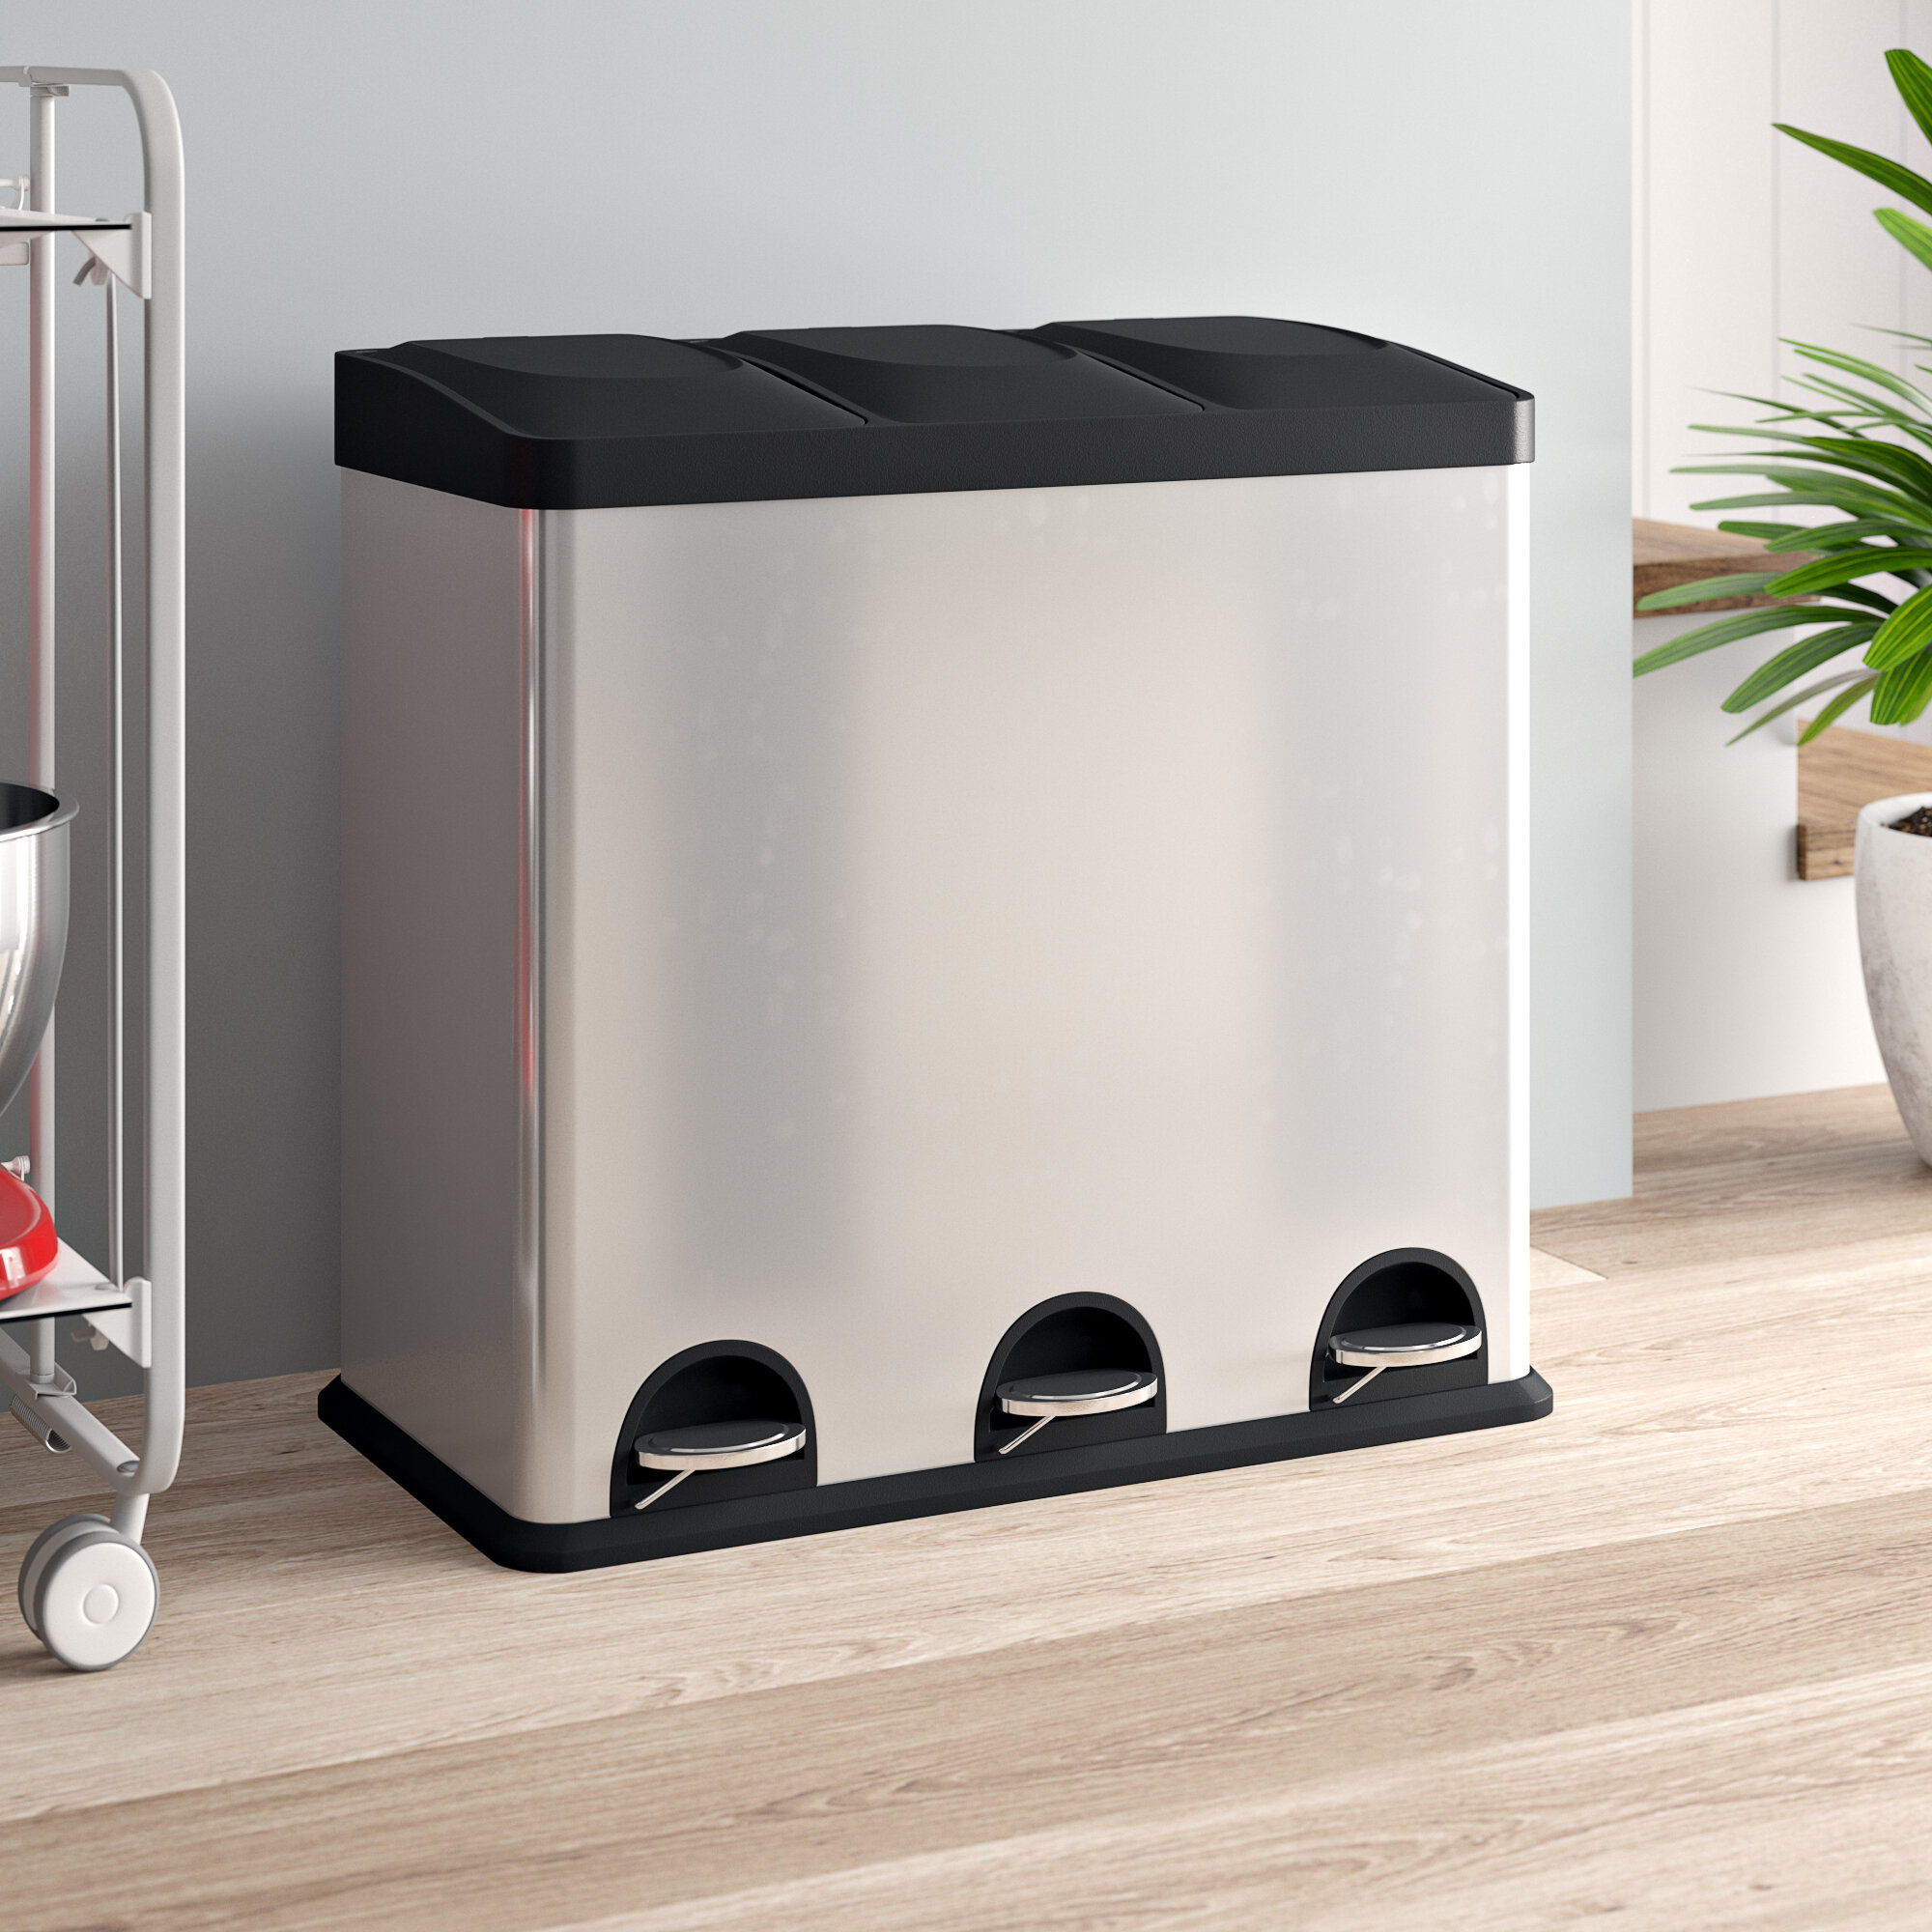 Kitchen Stainless Steel 54 Litre Step On Multi-Compartments Rubbish and  Recycle Bin